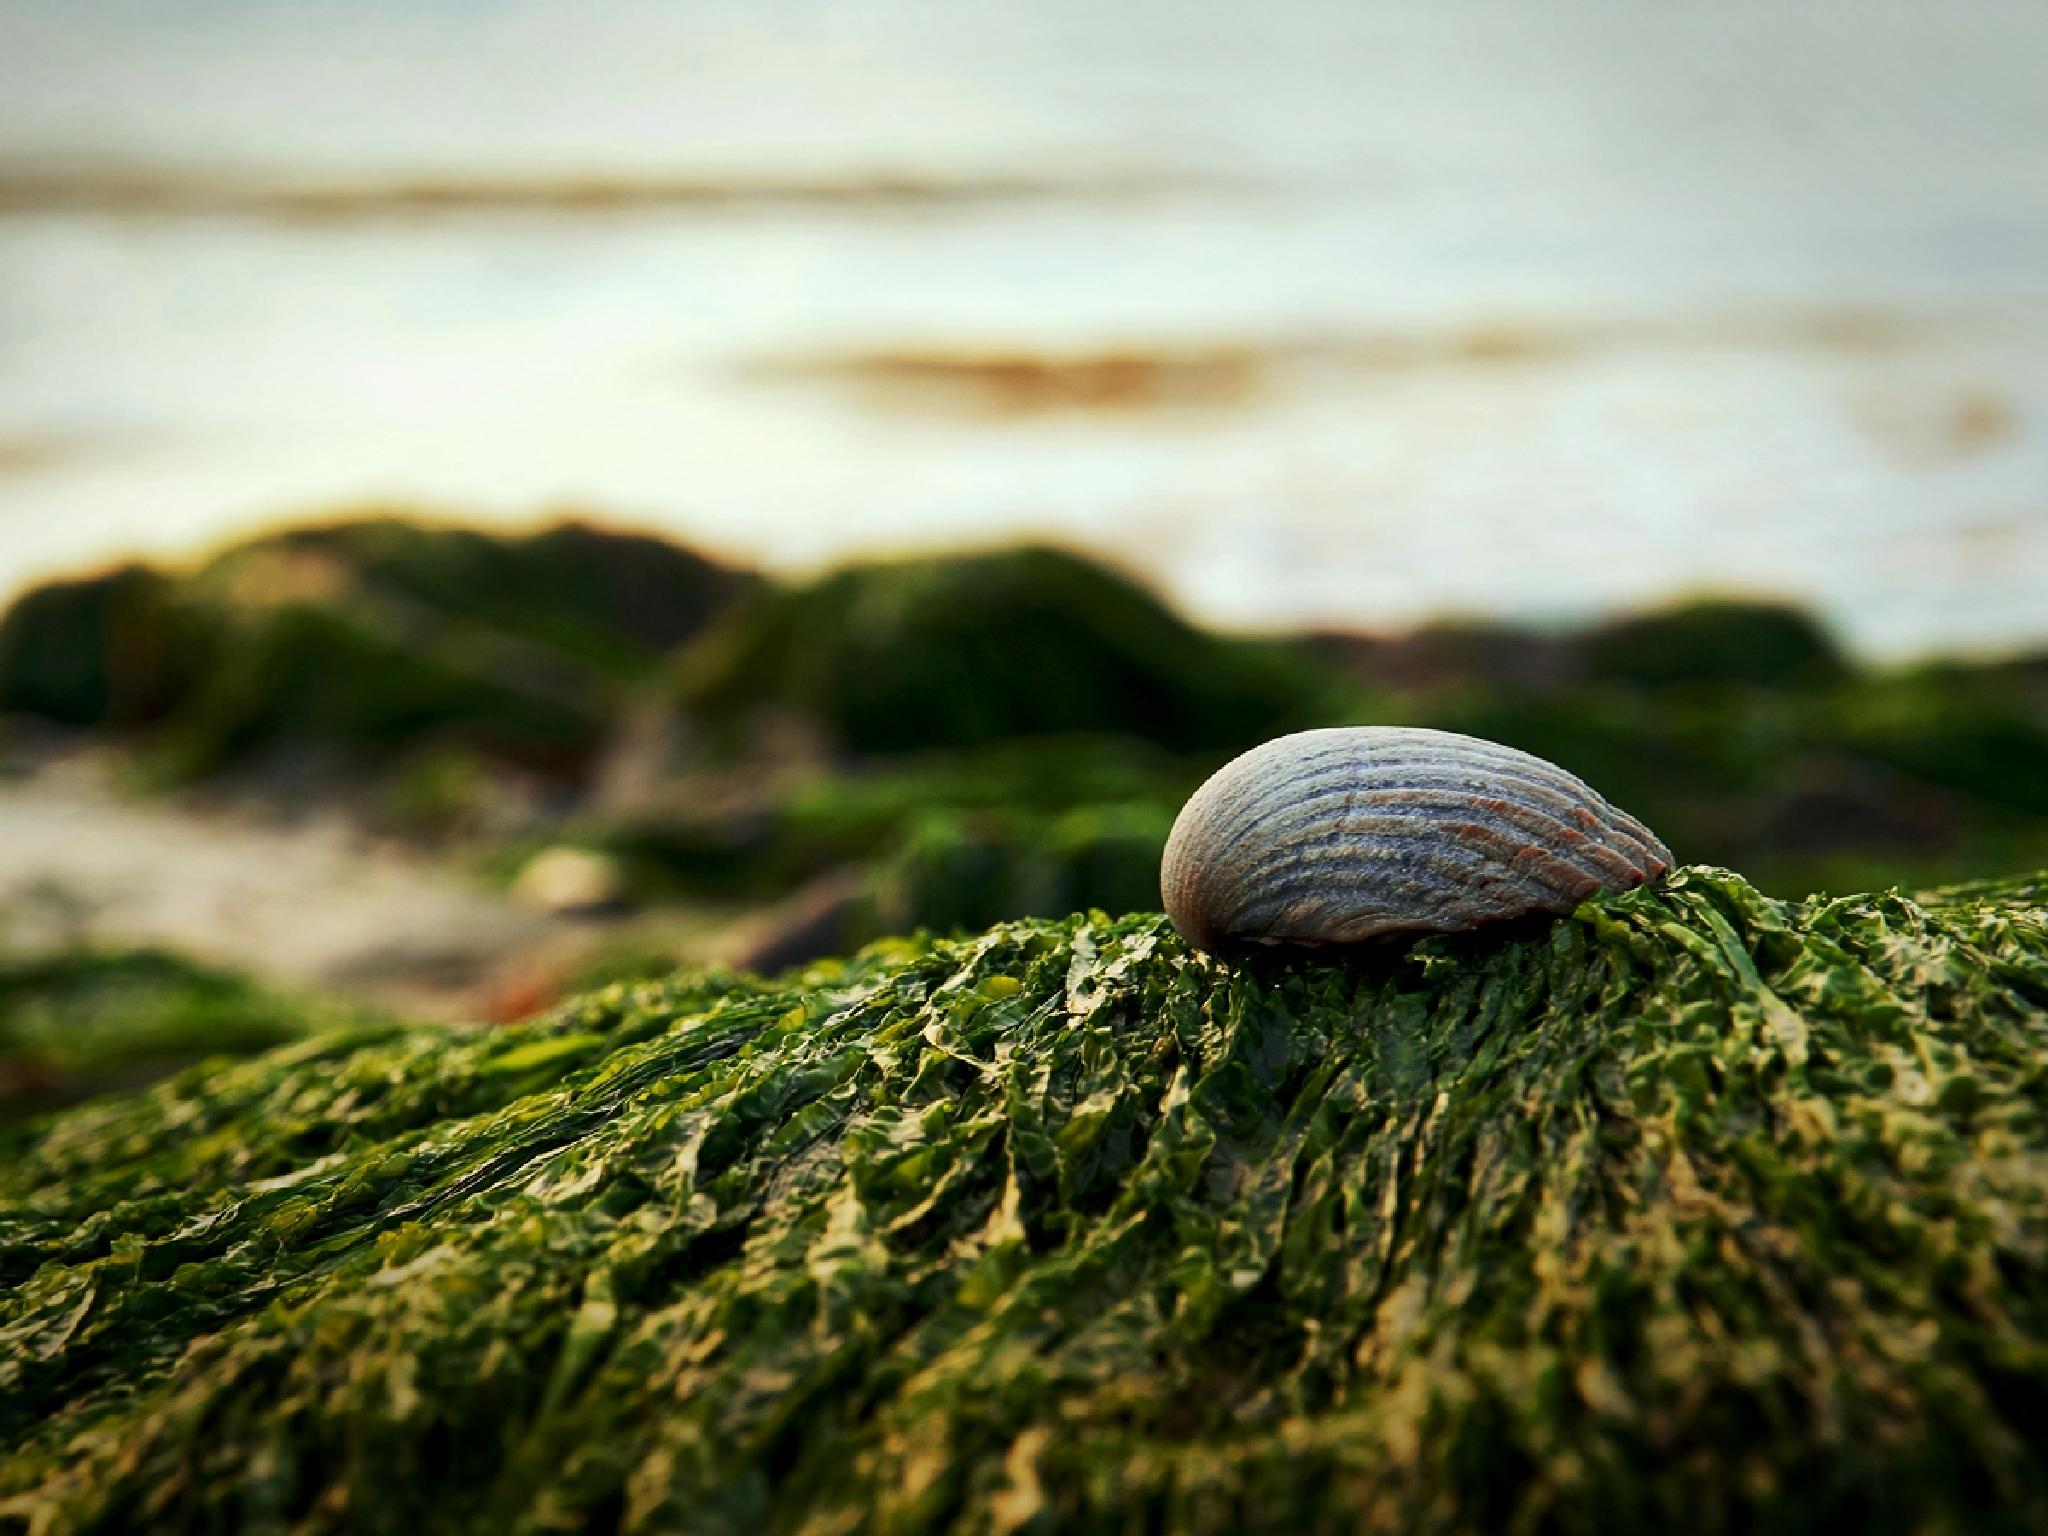 Shell by Almantas B